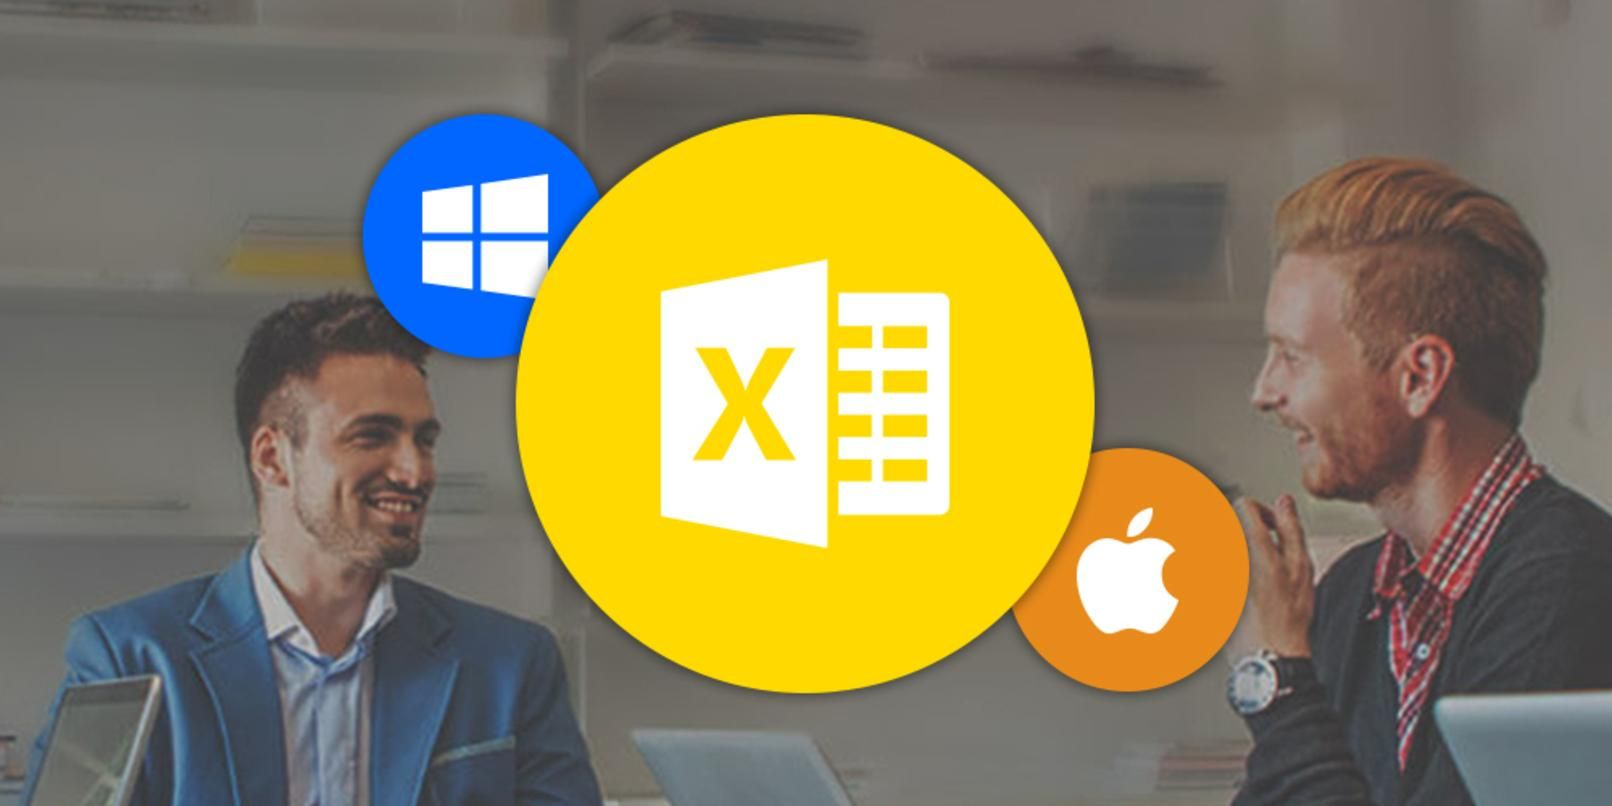 4 courses that will turn you into a Microsoft Excel whiz (89% off) https://t.co/ZOZaOSfp5g http://pic.twitter.com/4PwAba9CGl   App M0bile (@AppDevM0bile) September 16 2016